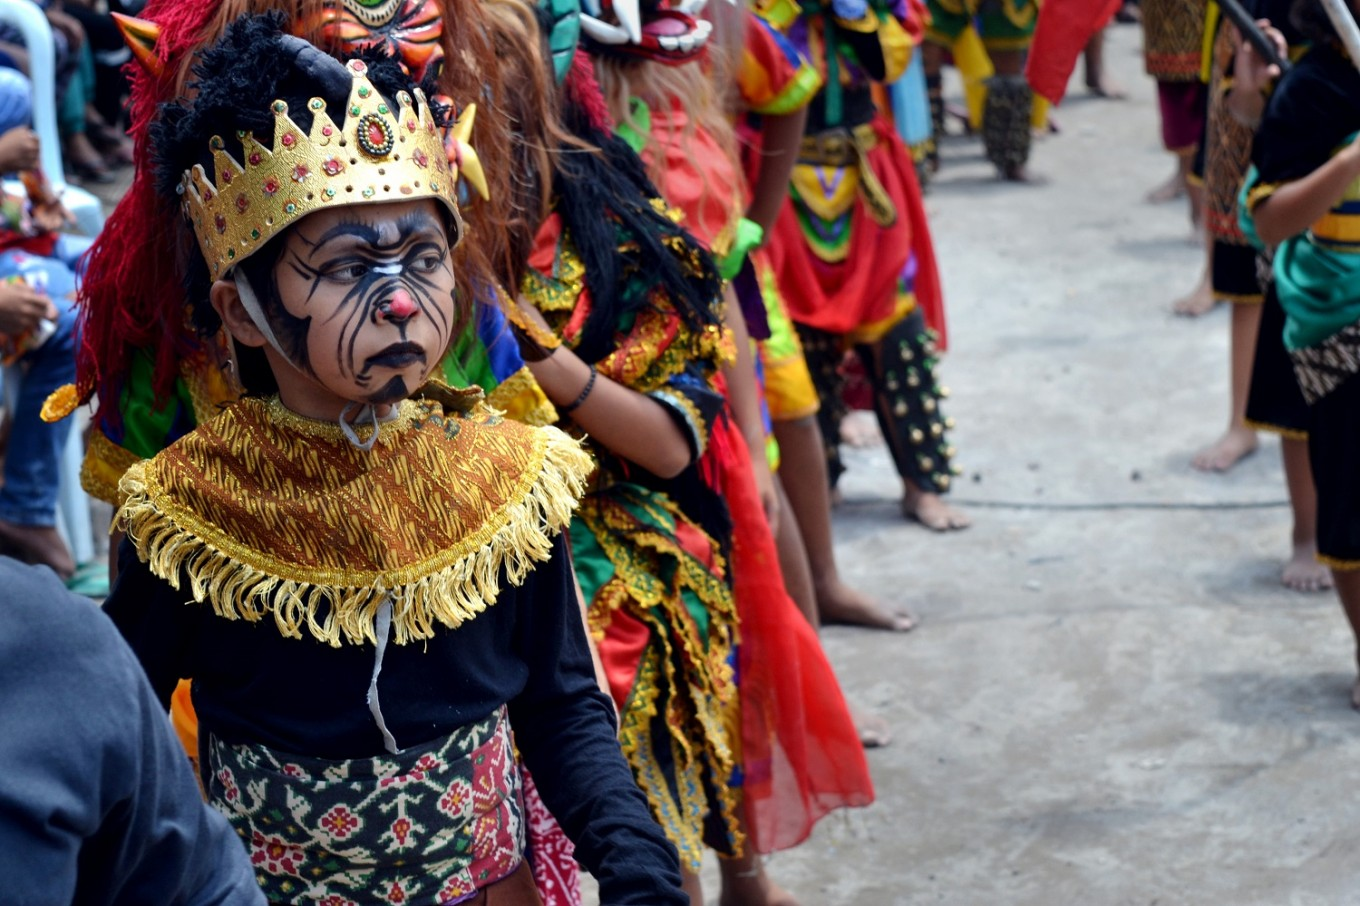 A child in traditional make up and costume during Tlatah Bocah.